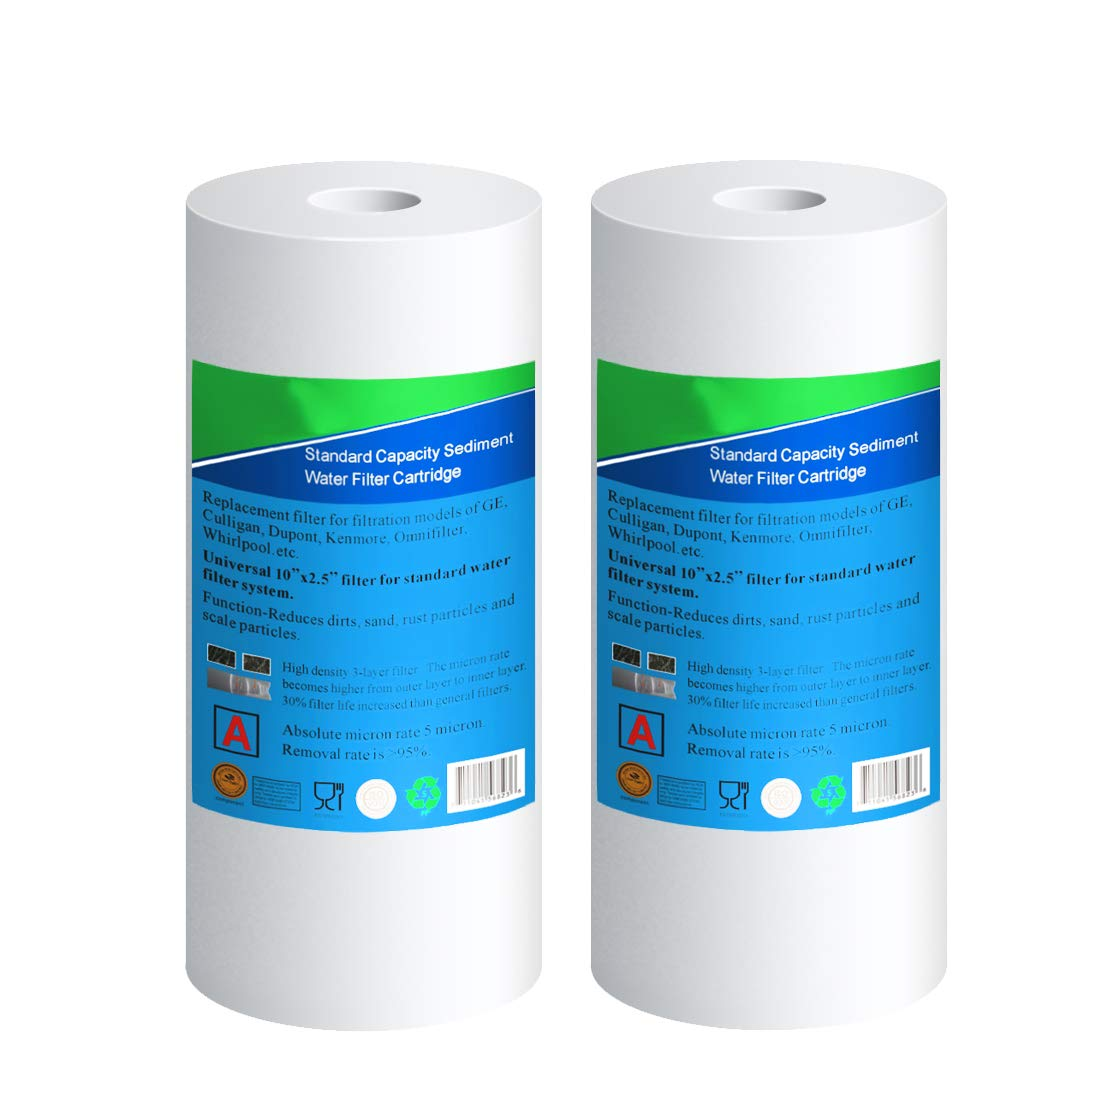 W//Rubber Wash Eurotech Enterprise Inc EXCELPURE Whole house 4.5 x 10 5 Micron)PP Sediment Water Filter Compatible with DuPont WFHD13001B,Pentek DGD, RFC Series,Culligan RFC-BBSA,Whirlpool WHKF-GD25BB,and Big Blue Housing